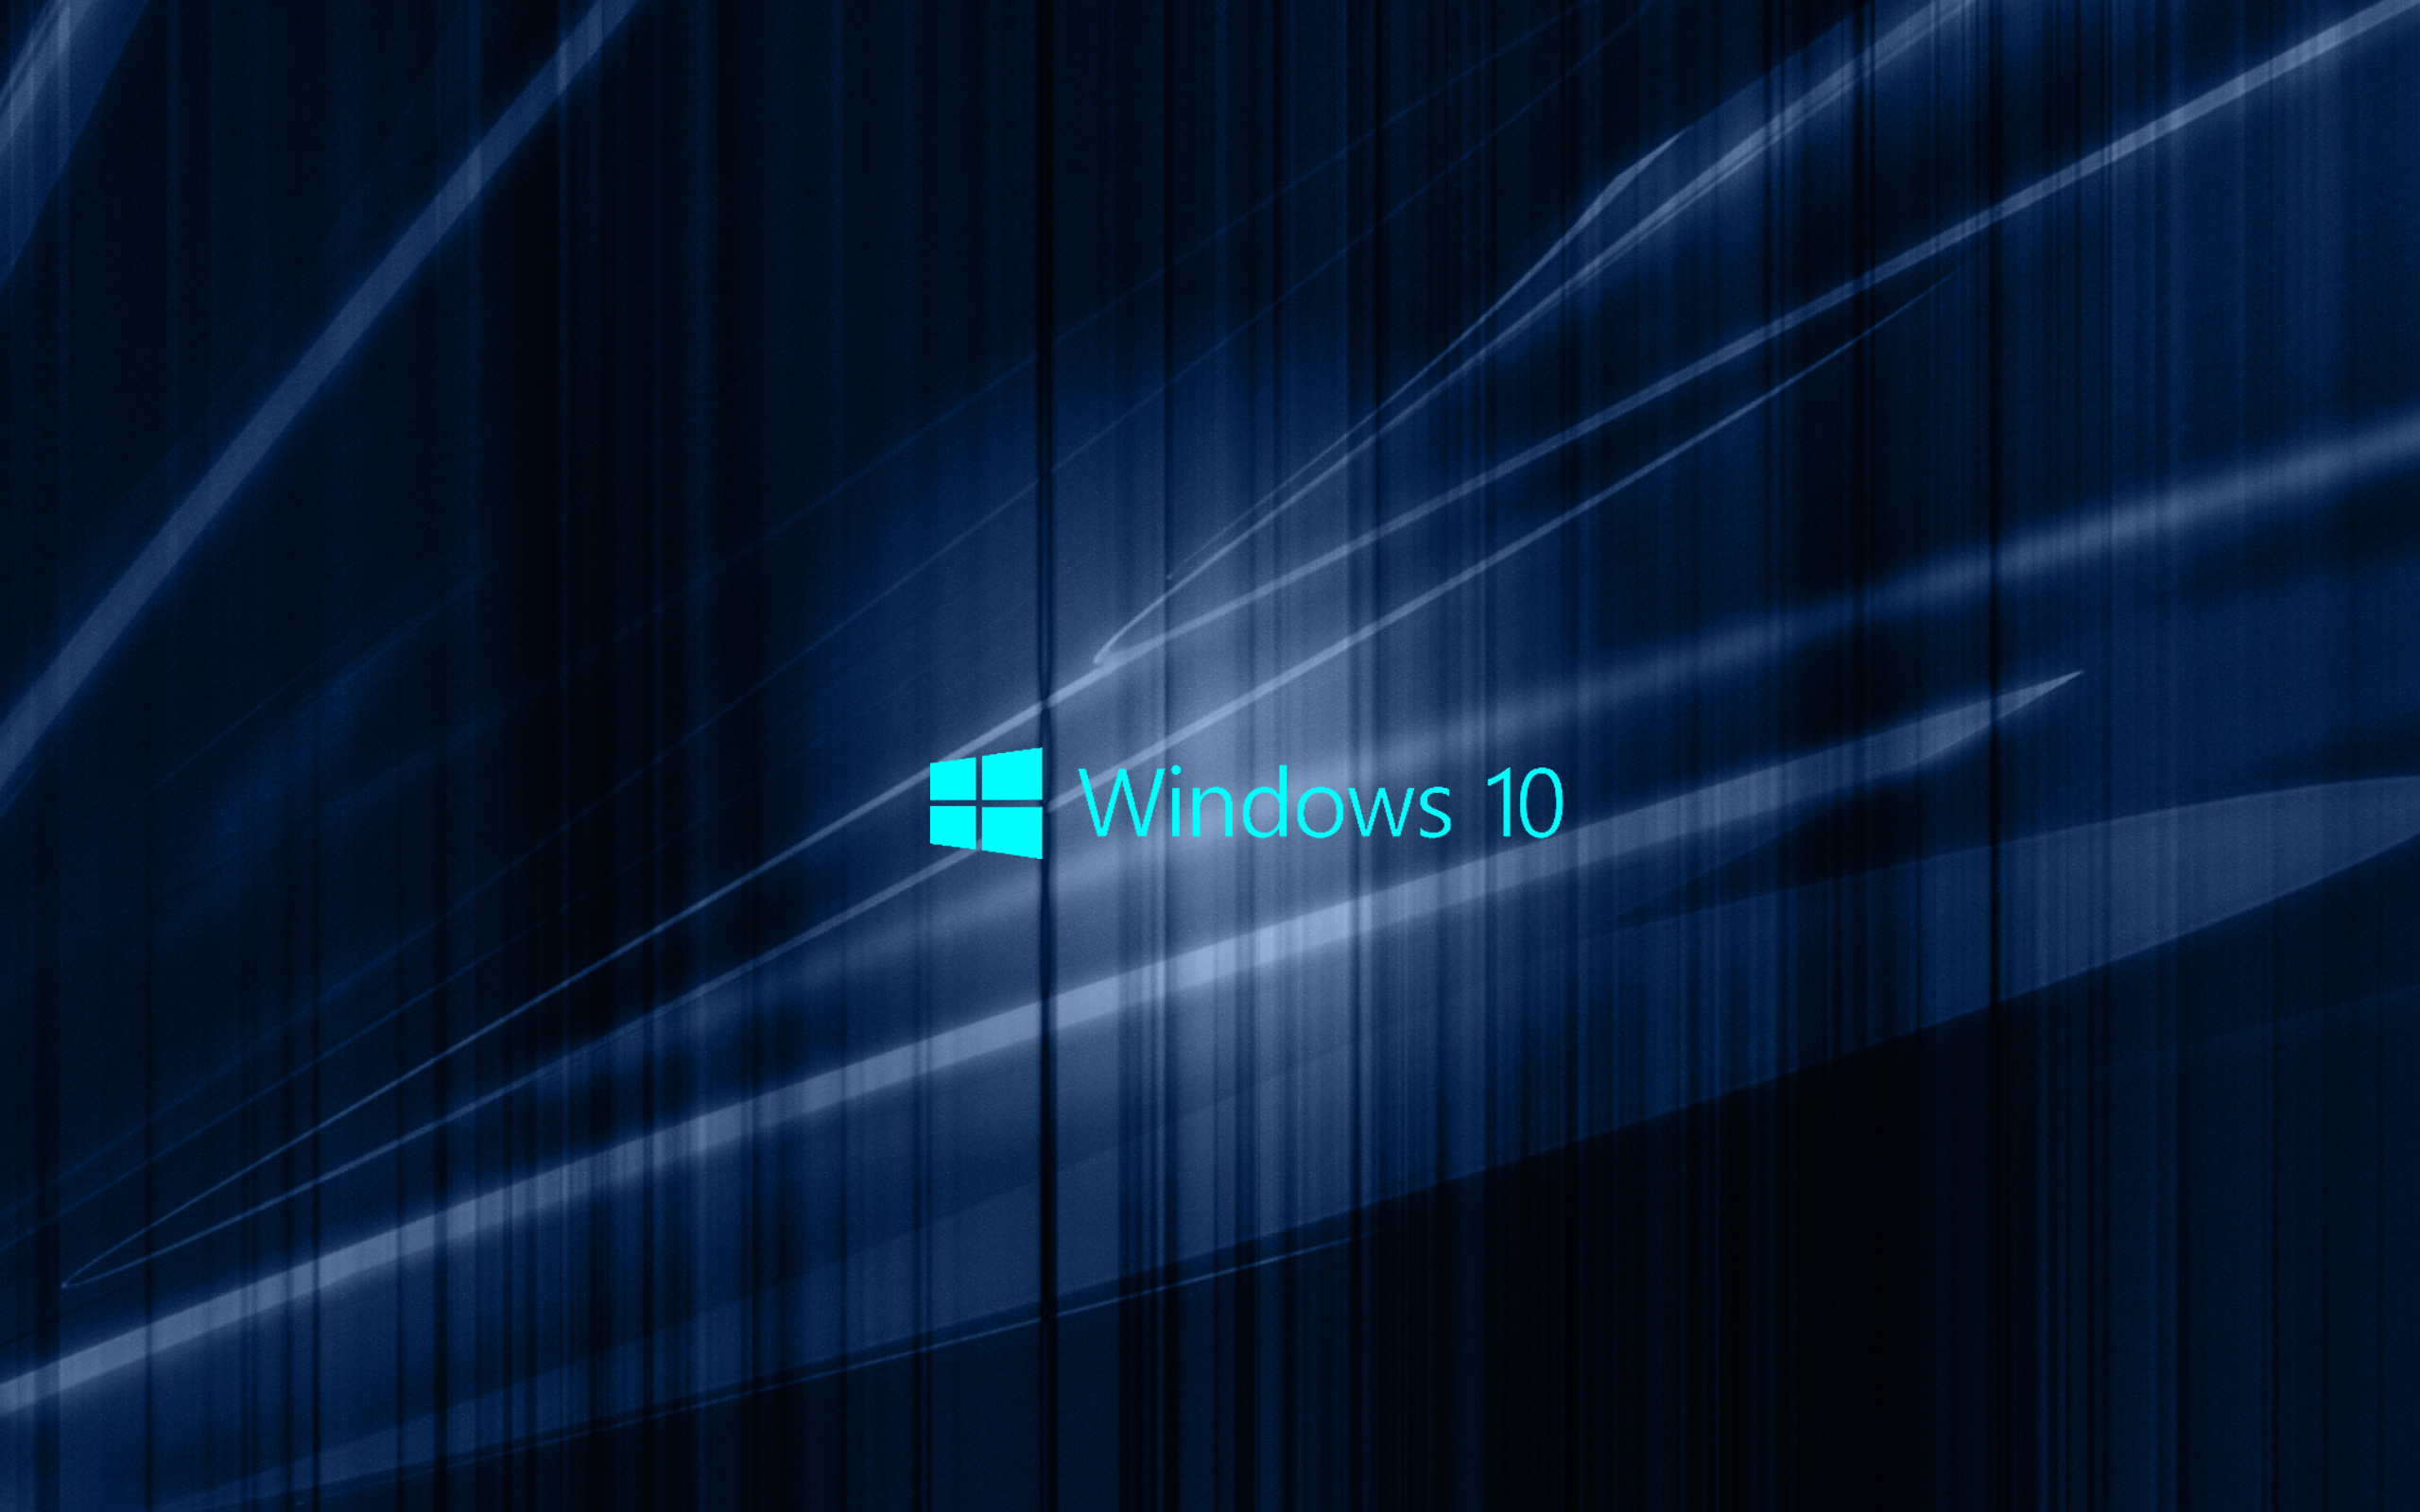 Windows 10 Wallpaper Blue Wallpapersafari